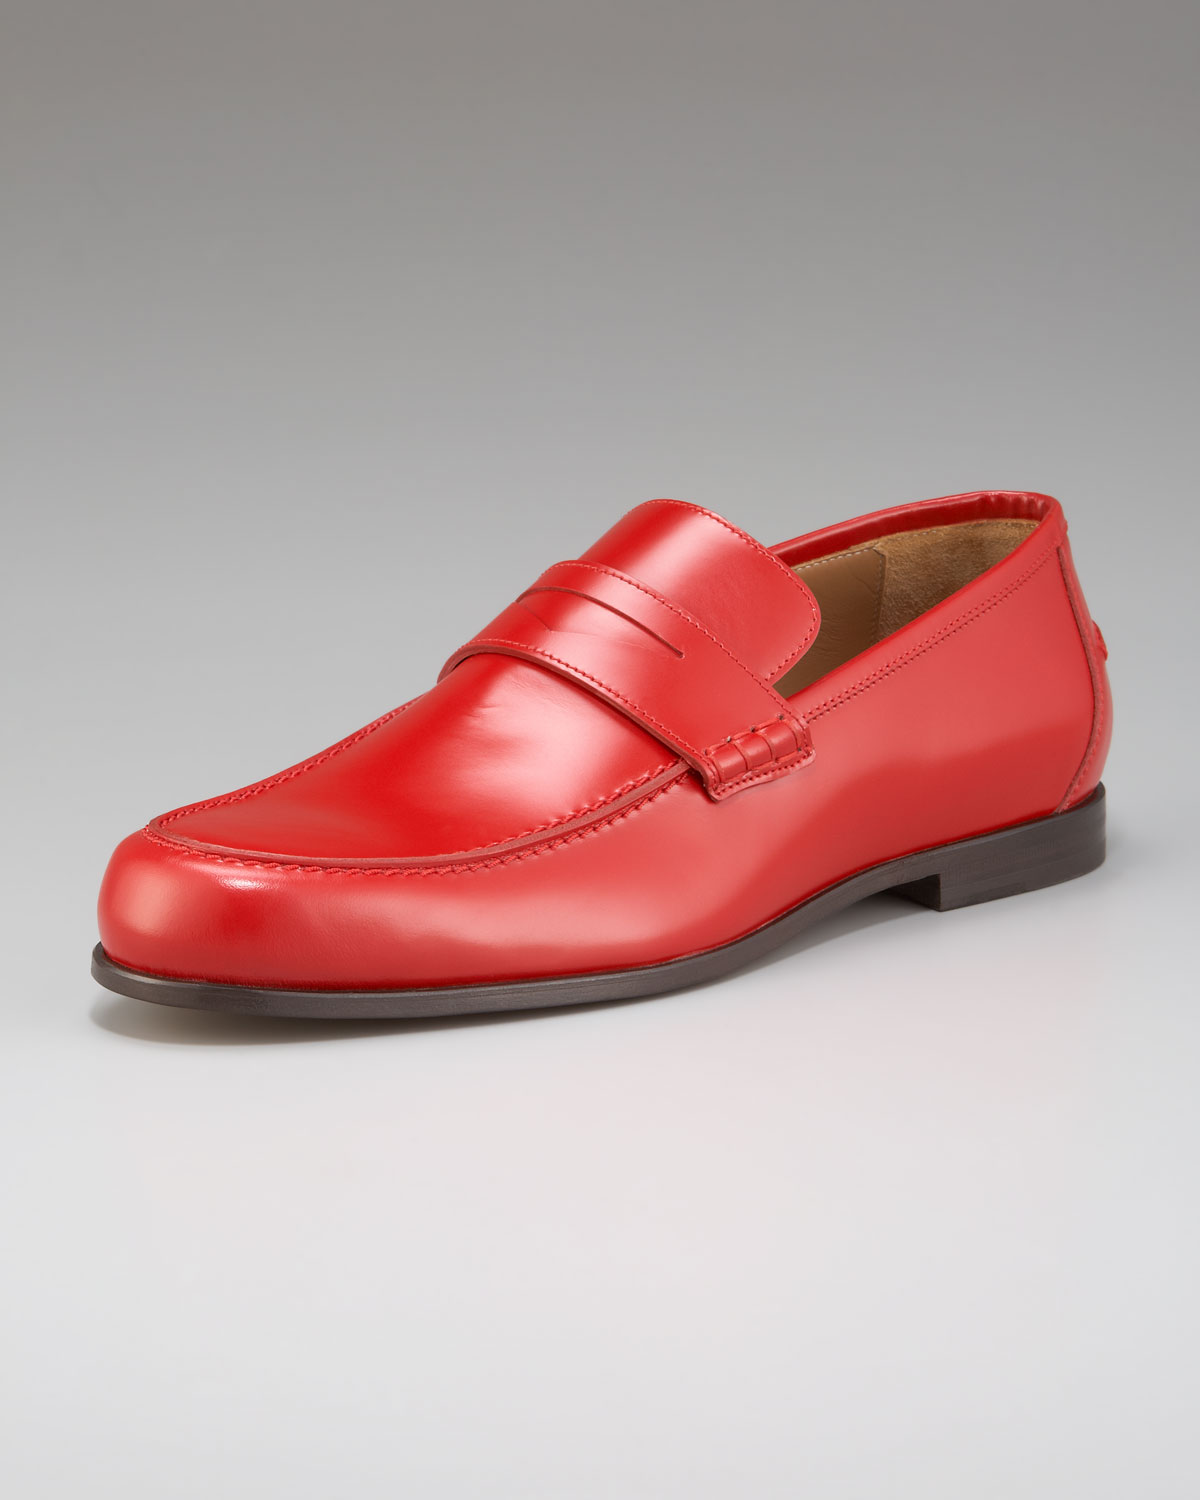 Lyst - Jimmy Choo Shiny Leather Penny Loafer in Red for Men